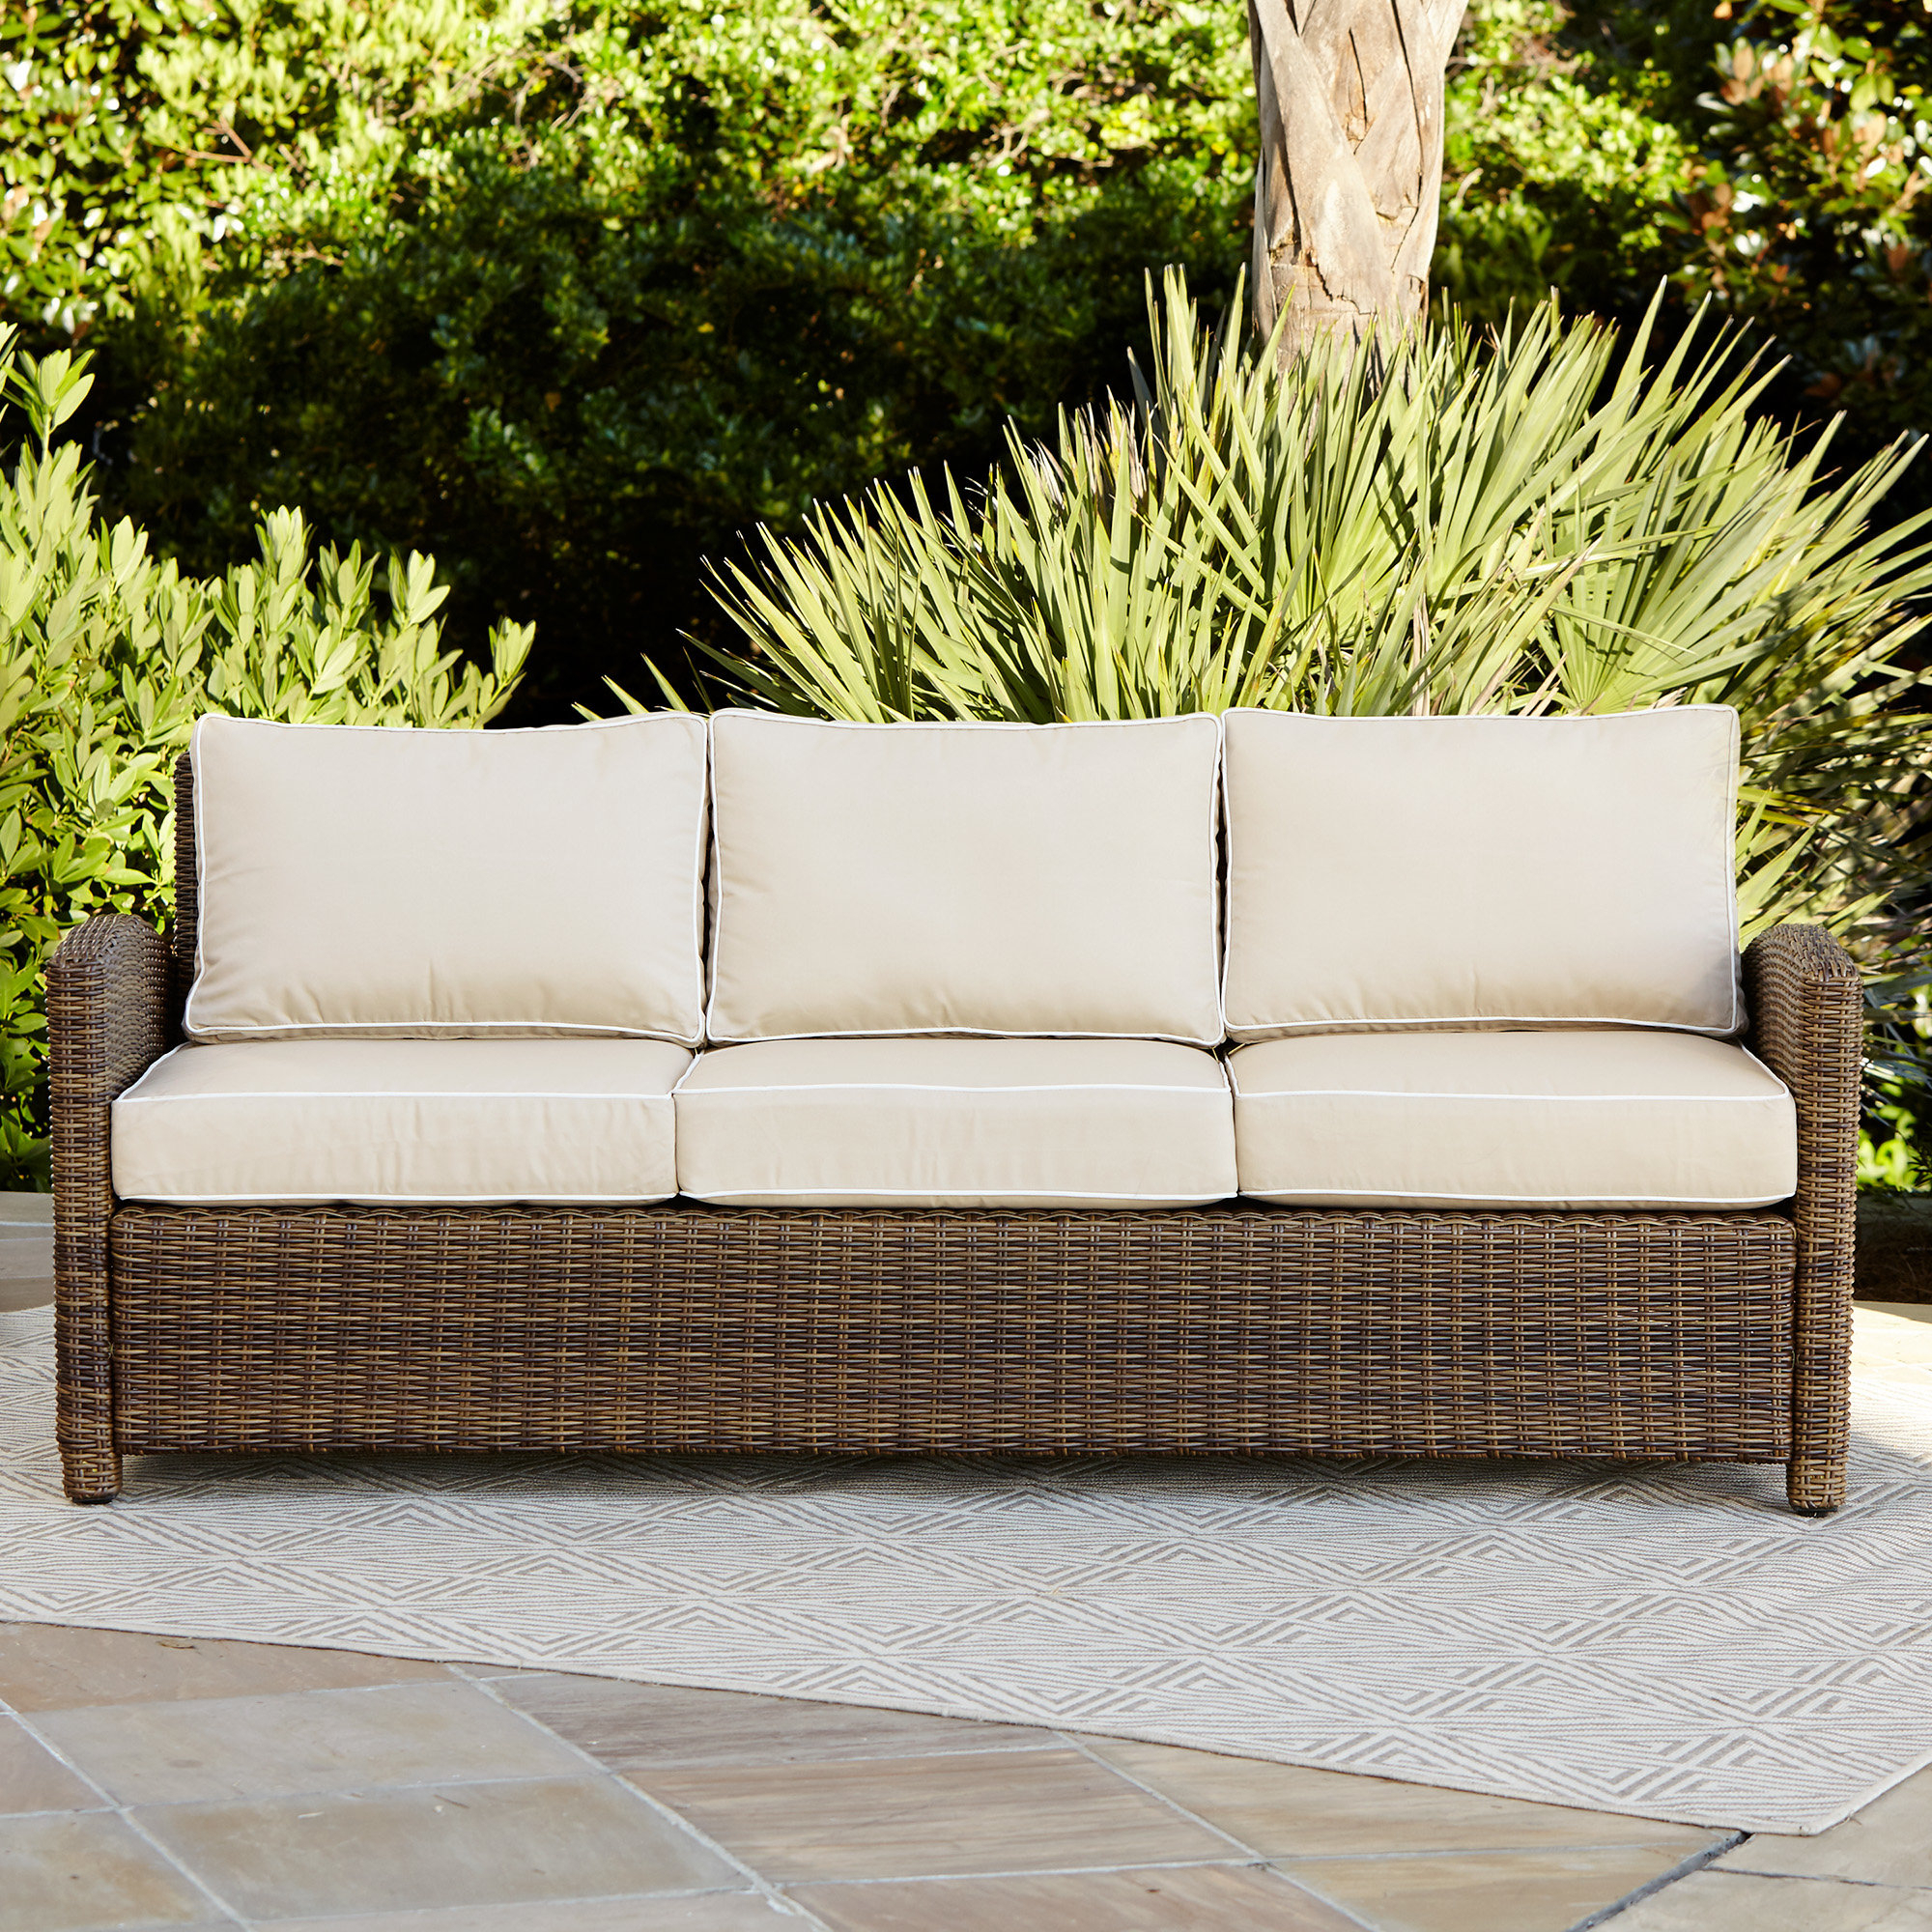 2020 Mcmanis Patio Sofas With Cushion With Regard To Lawson Patio Sofa With Cushions (View 1 of 20)